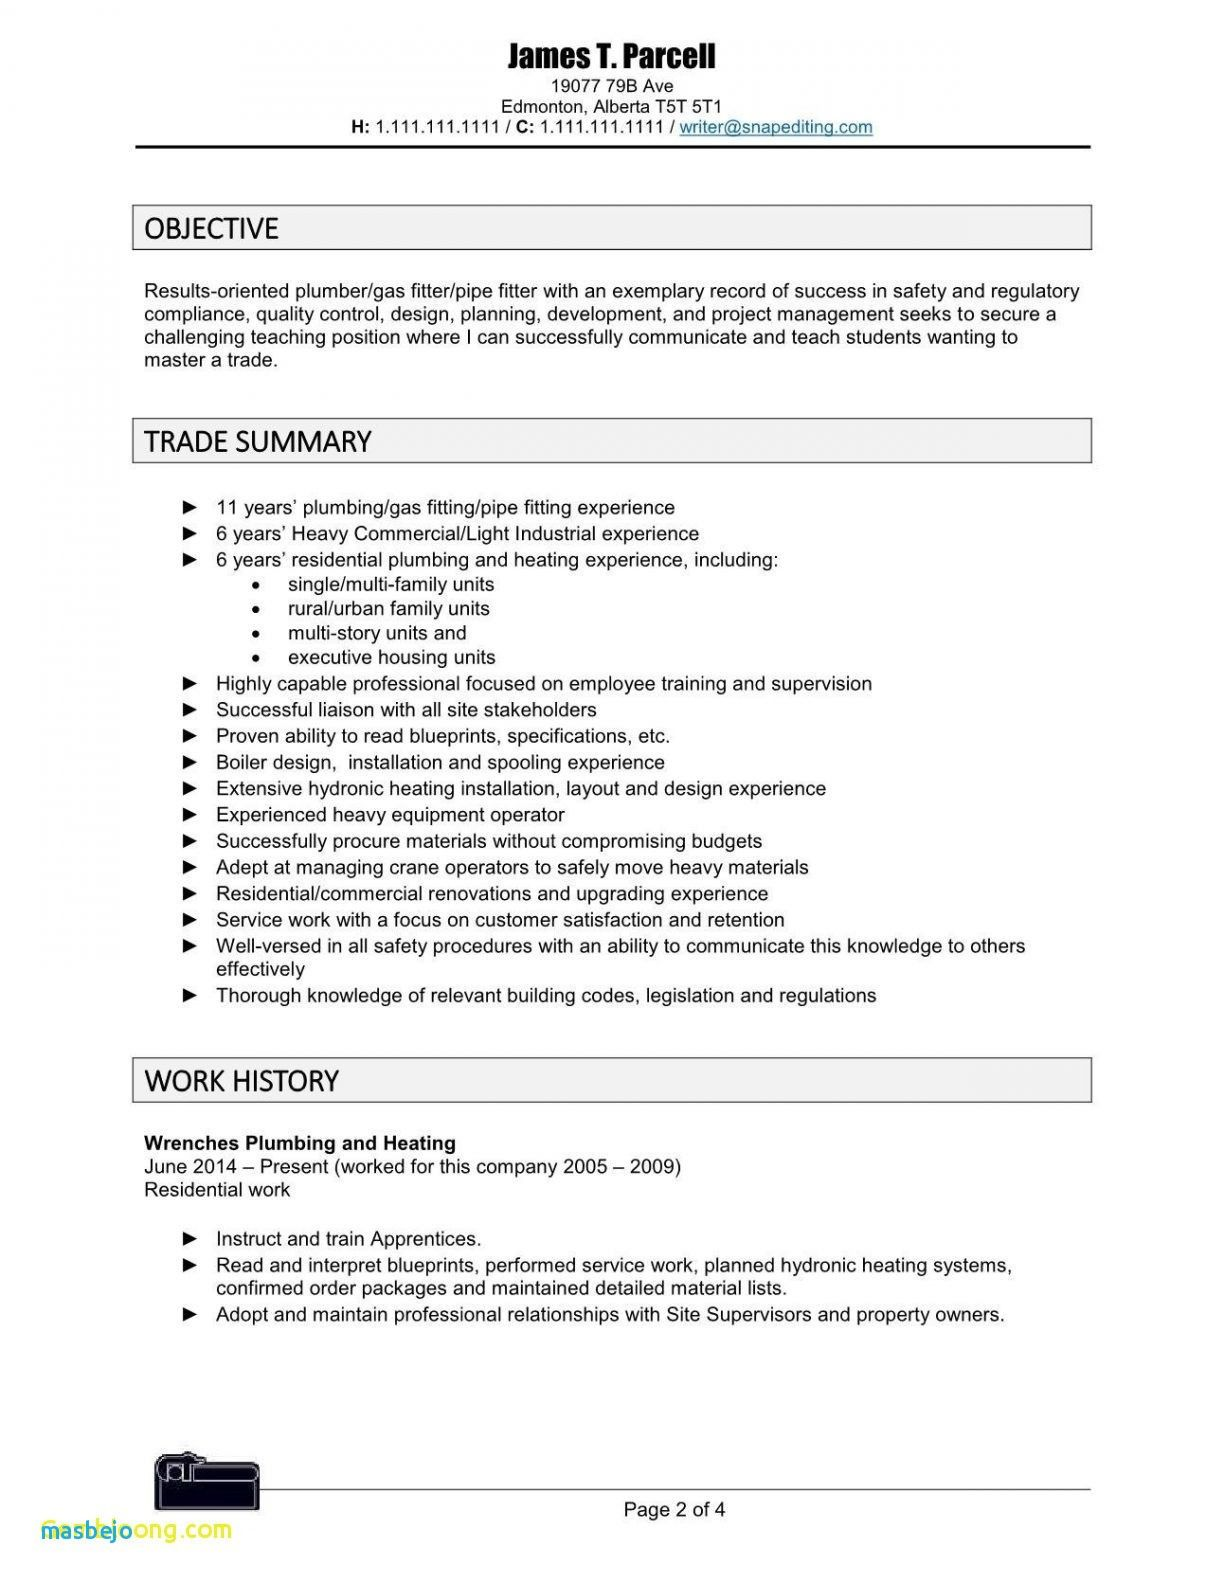 79 Best Of Images Plumber Pipefitter Resume Examples Free Check More At